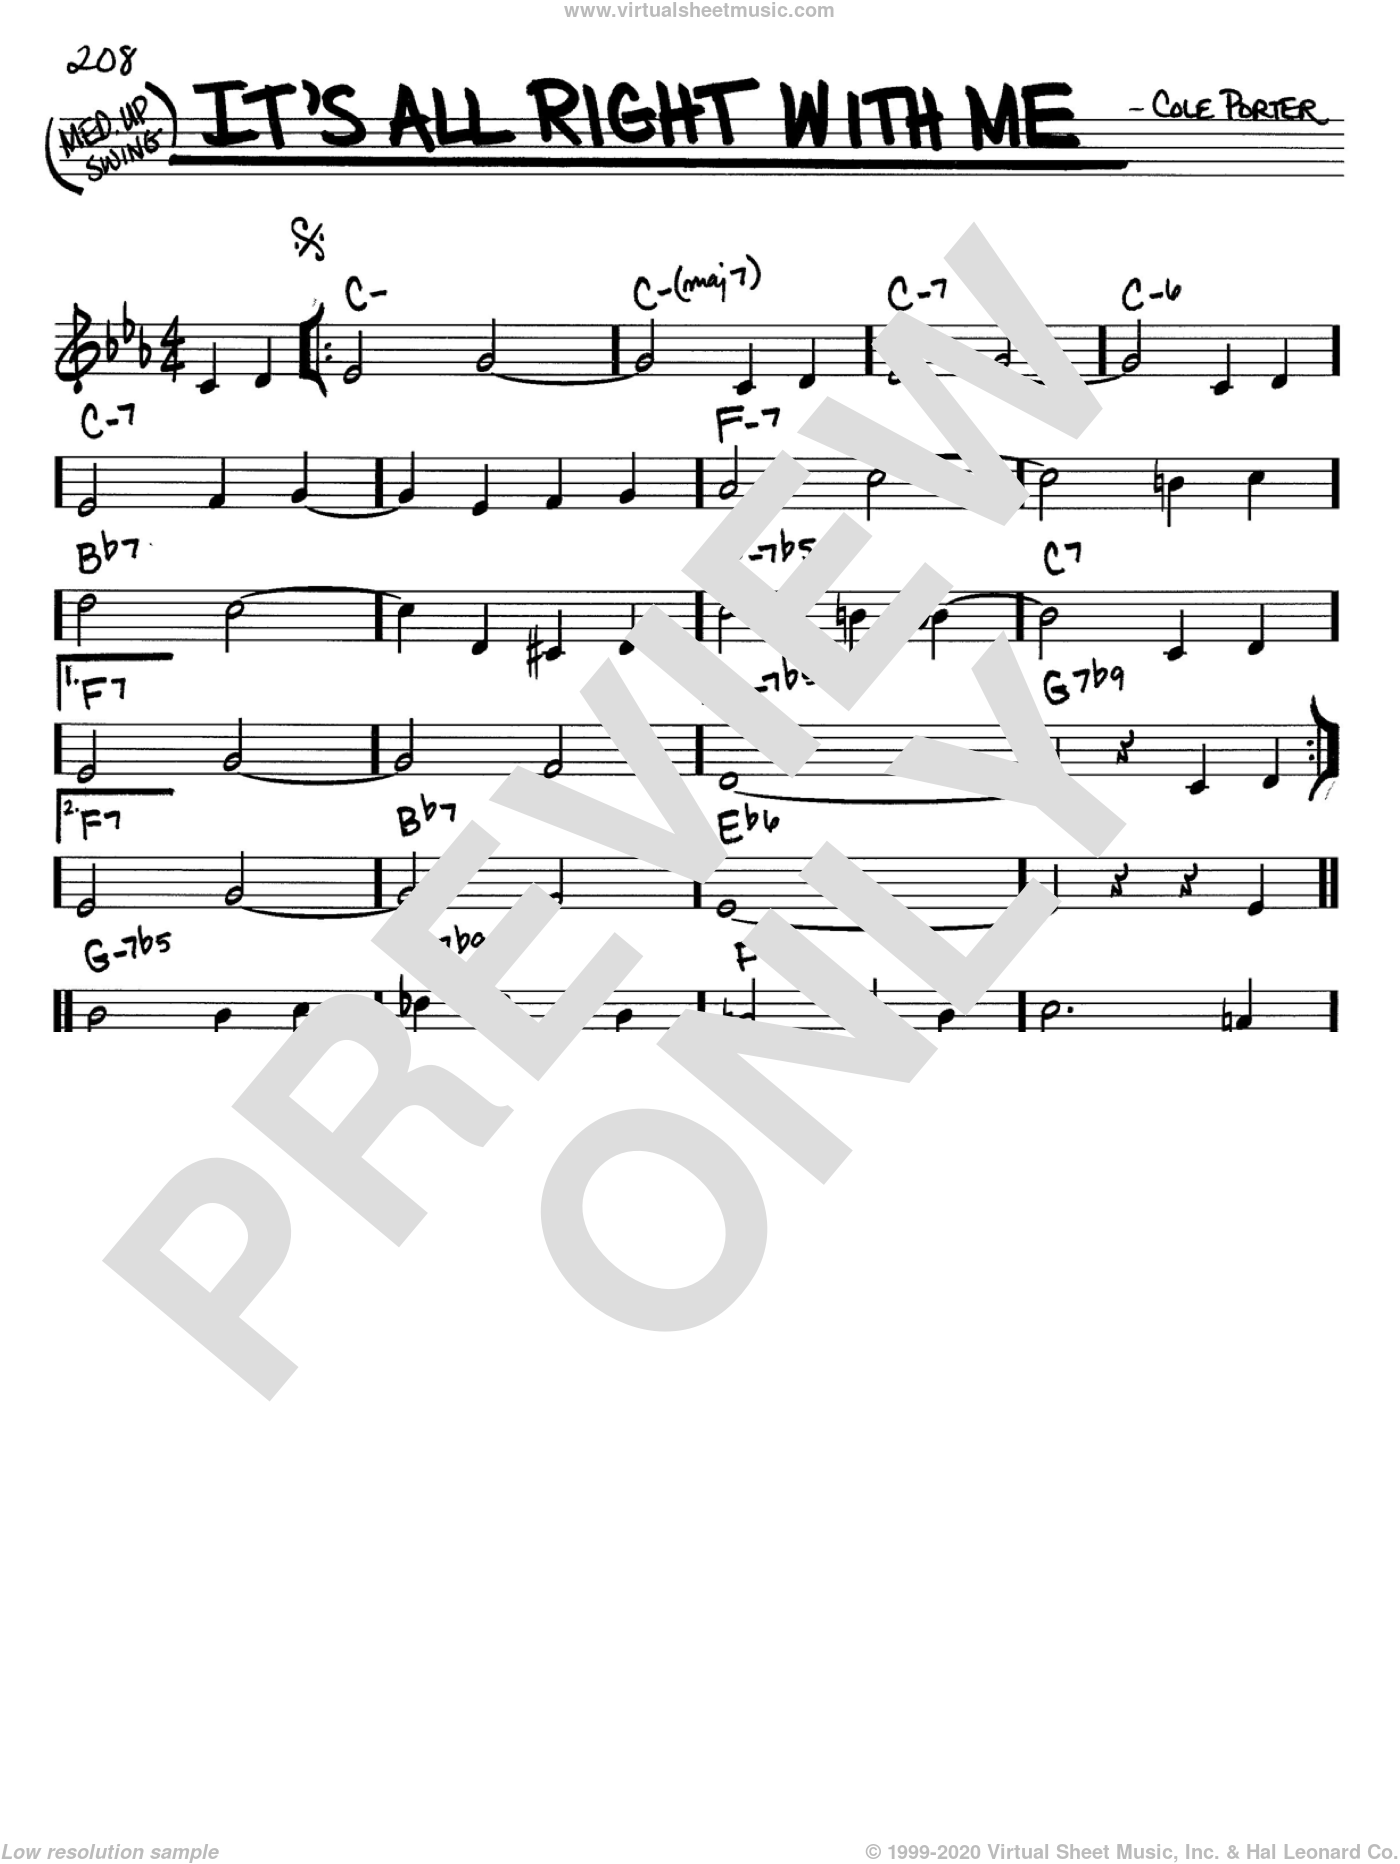 It's All Right With Me sheet music for voice and other instruments (C) by Cole Porter. Score Image Preview.